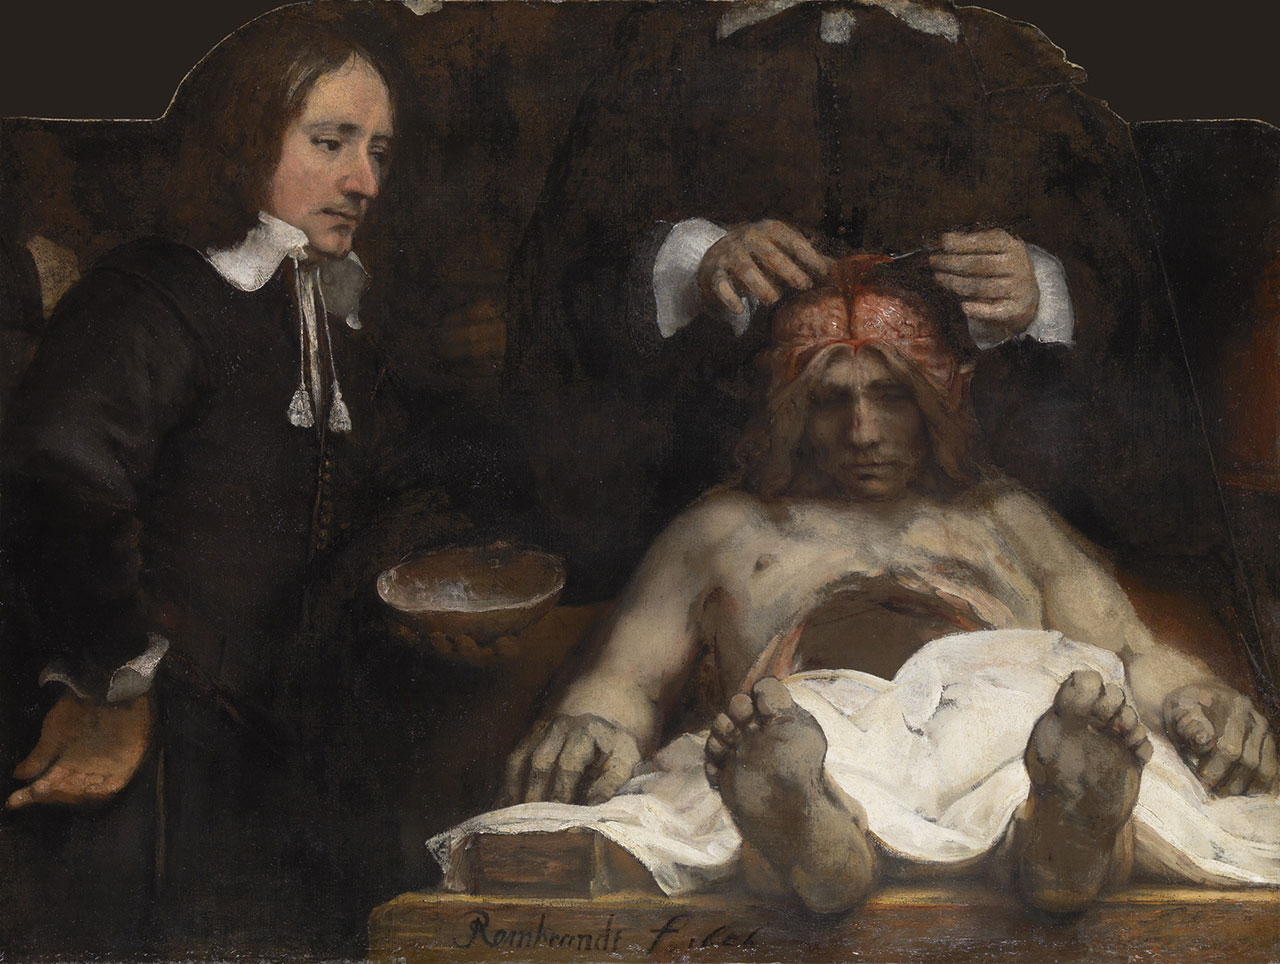 """Rembrandt, """"The Anatomy Lesson of Dr Joan Deyman"""" (1656), oil on canvas, 100 x 134 cm (© Amsterdam Museum, SA 7394)"""